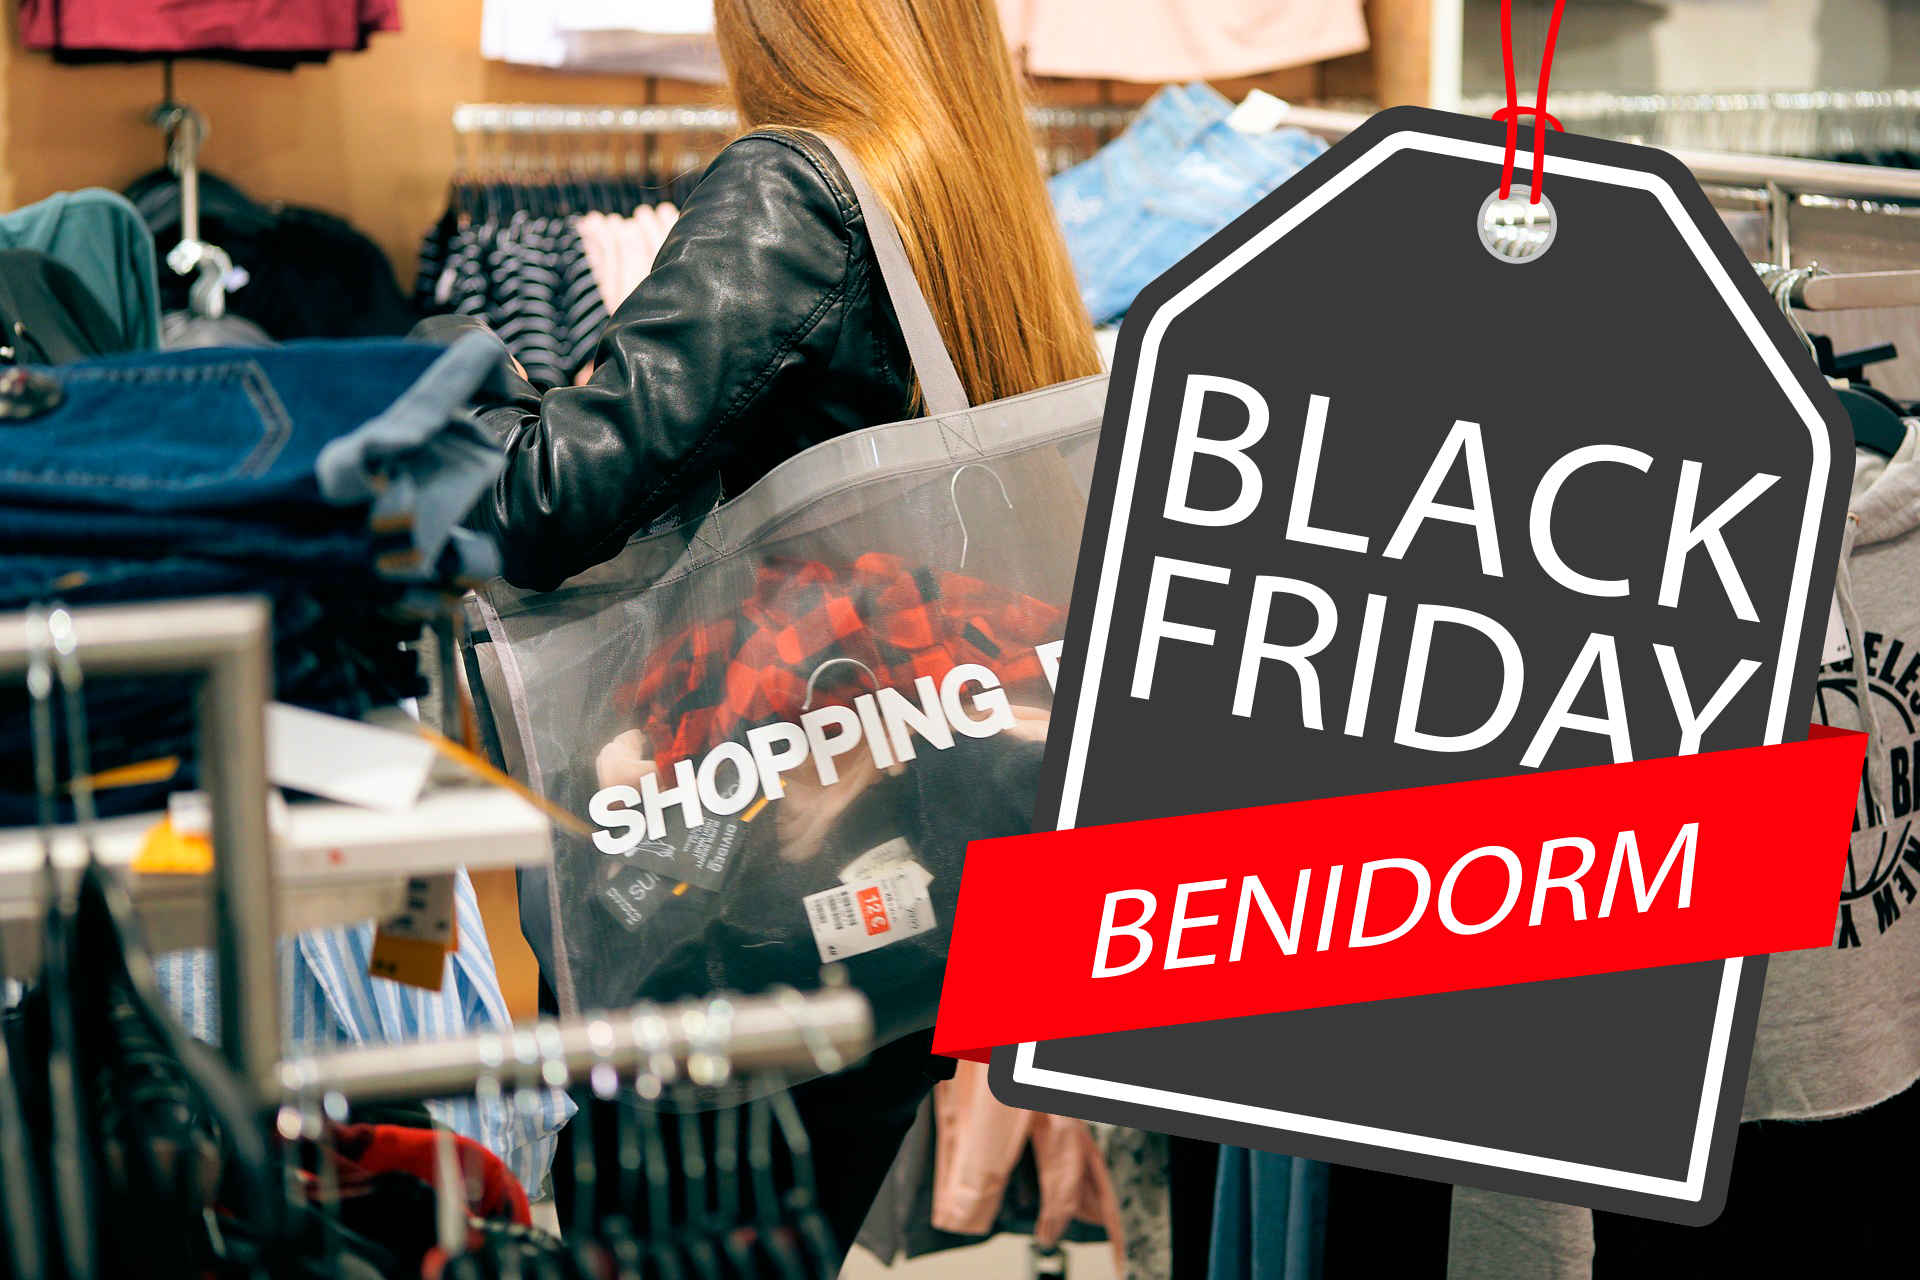 Compras benidorm black friday